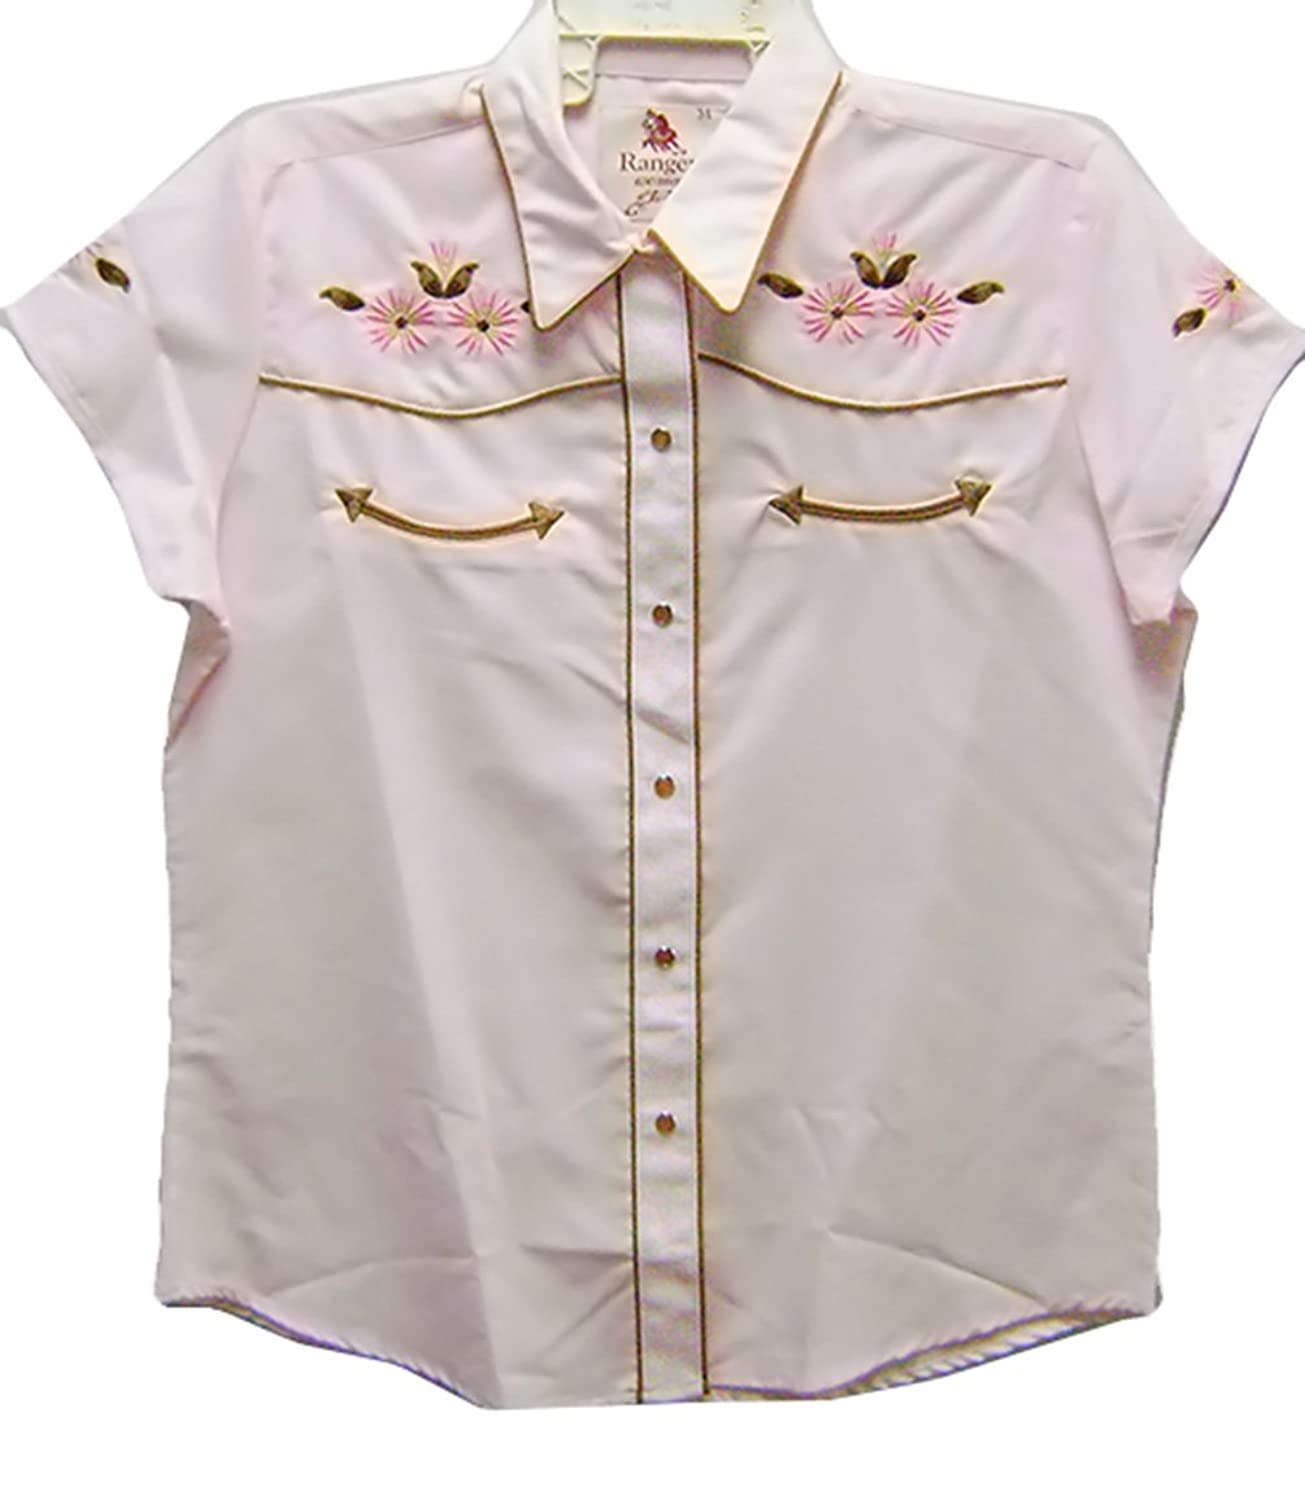 Modestone Women's Embroidered Short Sleeved Shirt Floral Embroidered Pink